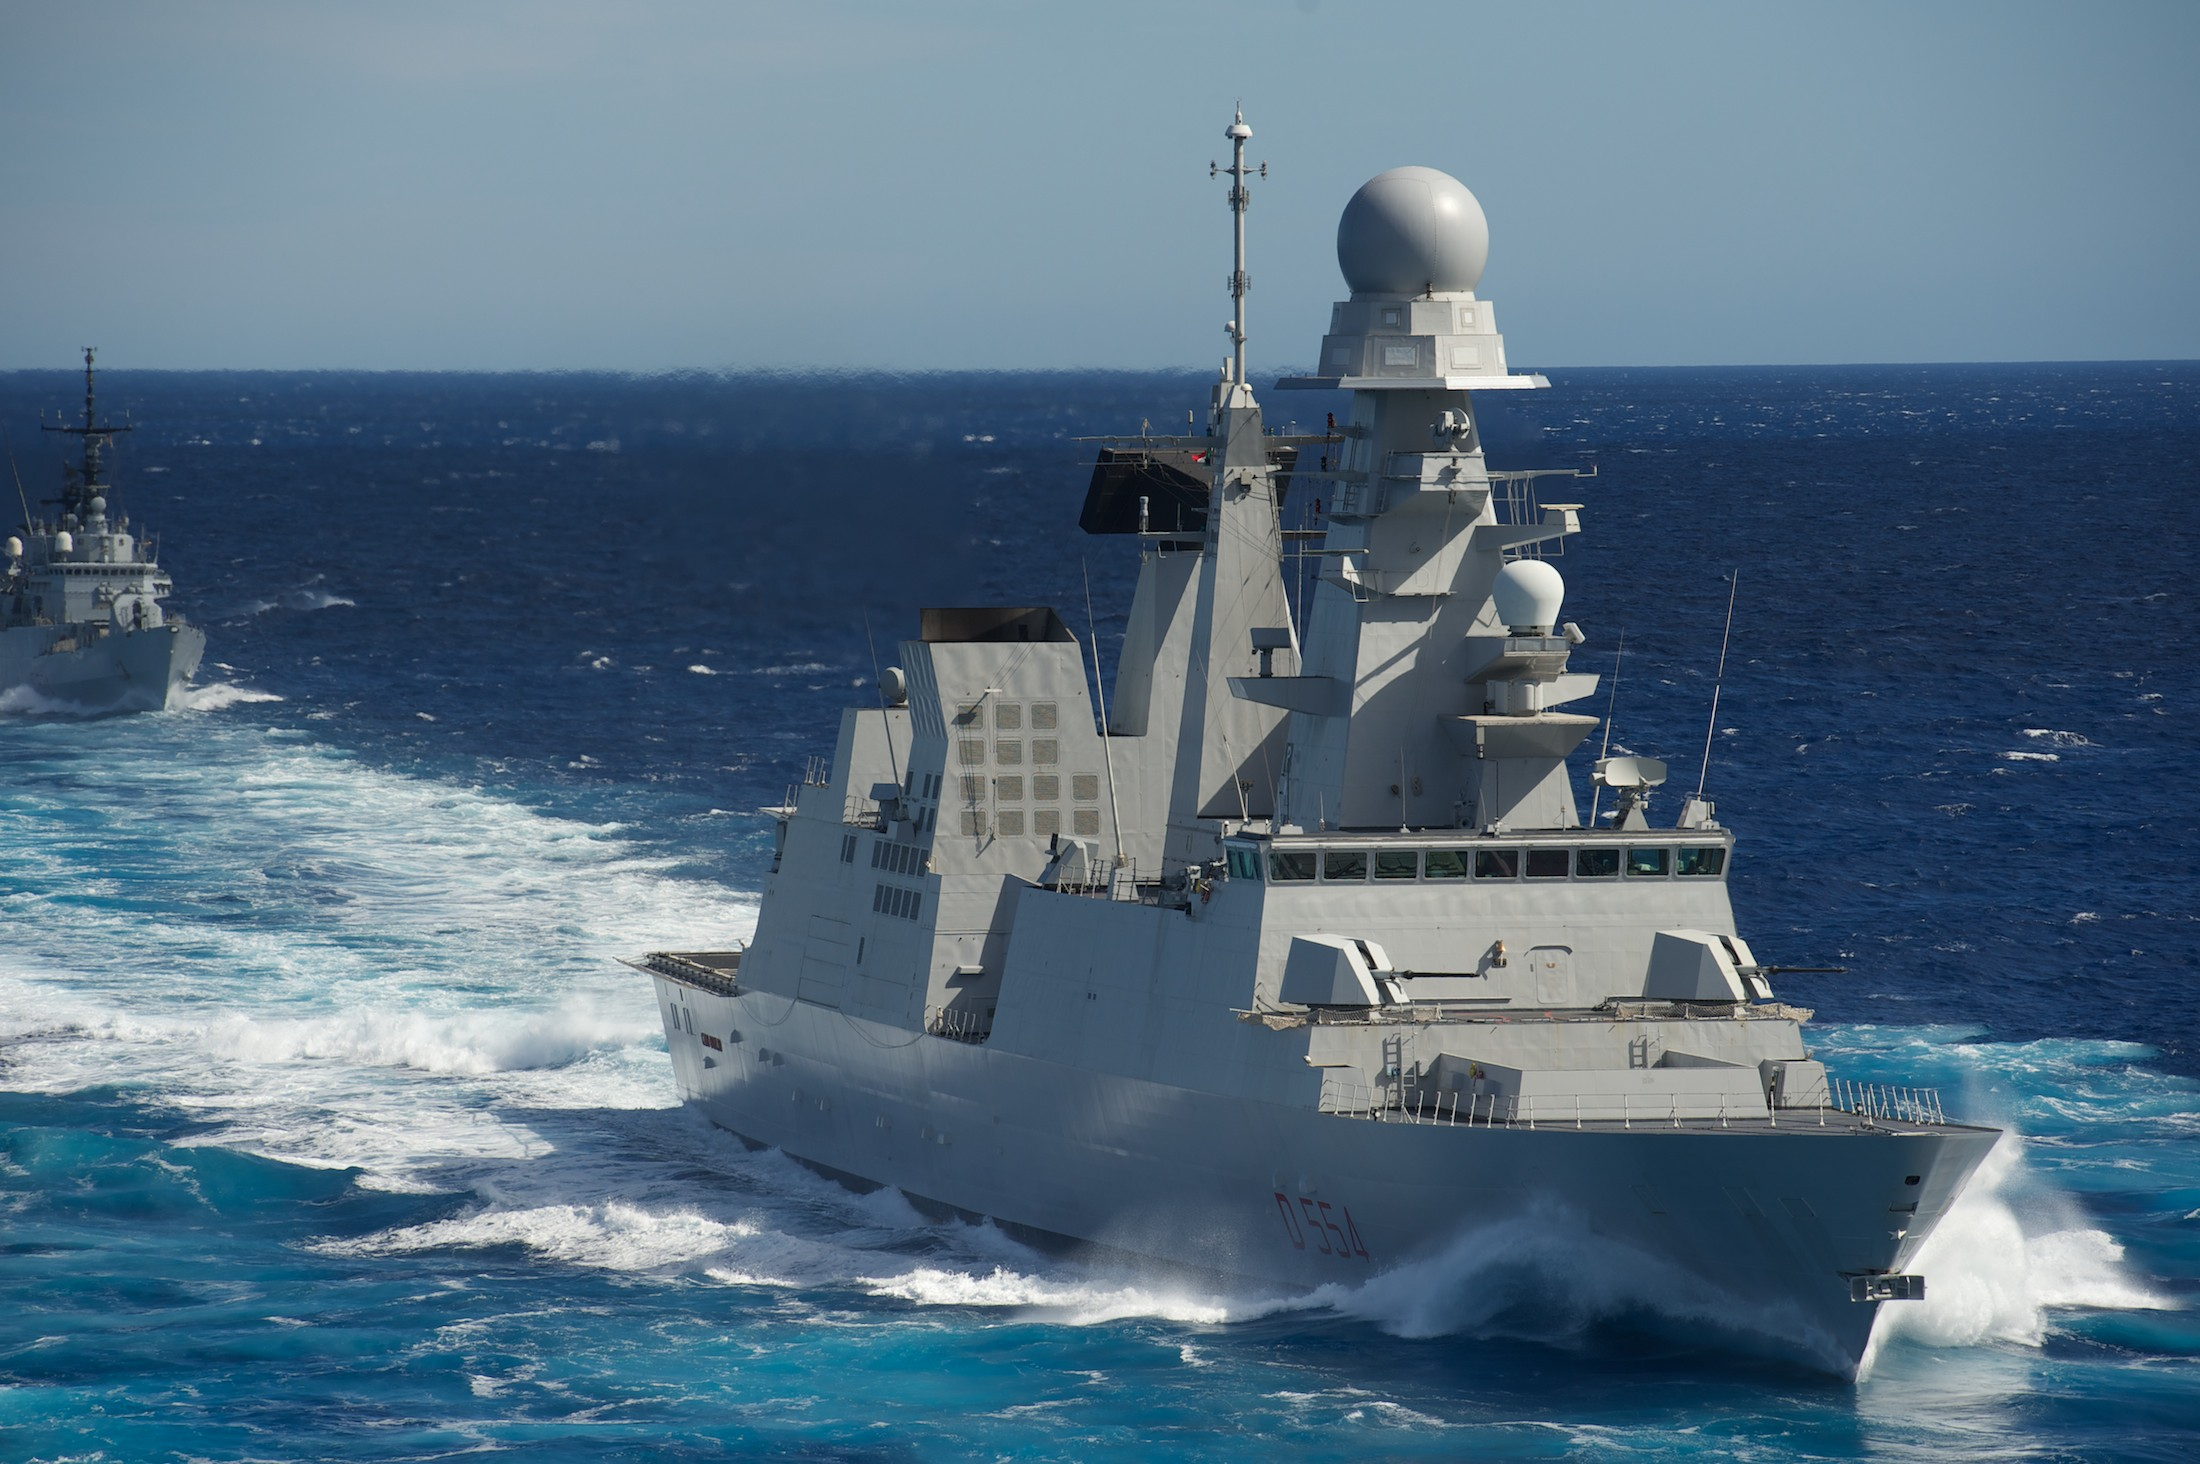 Top 10 Most Powerful Destroyers In The World